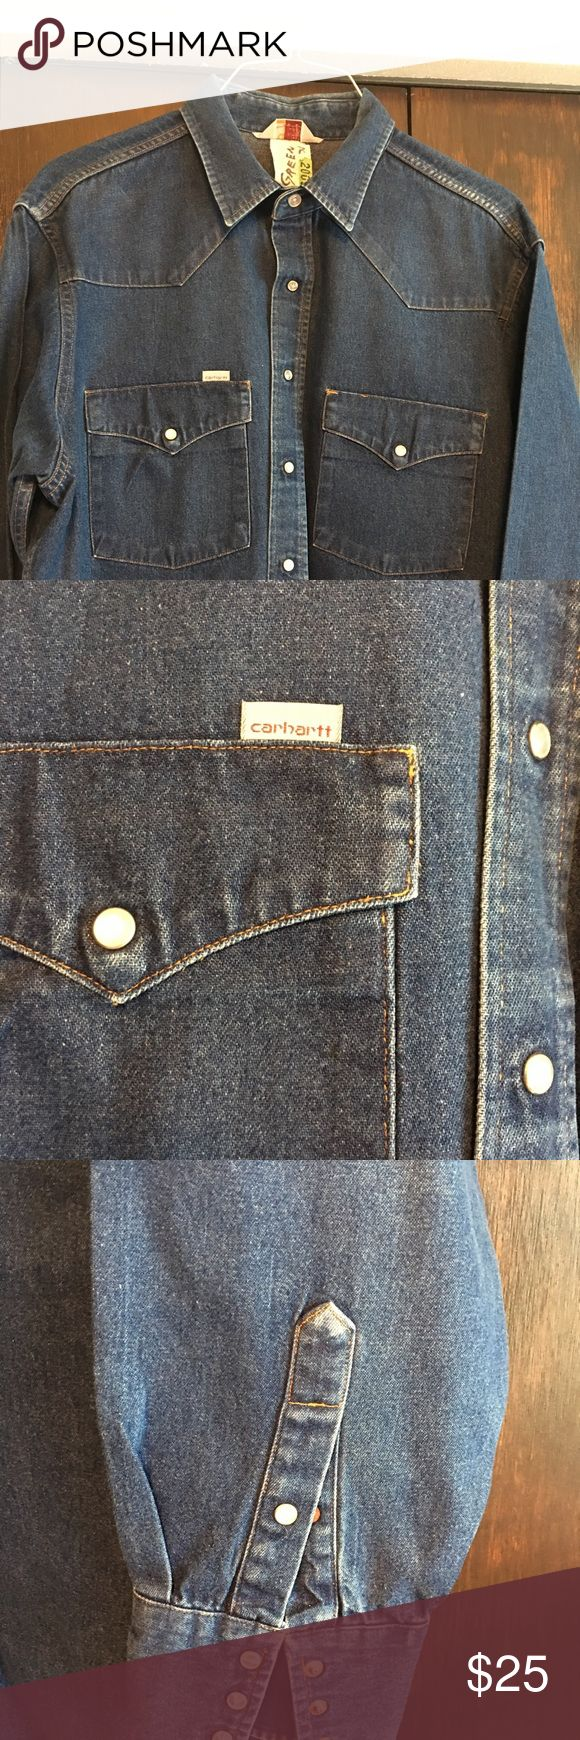 Carhartt XL Blue Jean Work Shirt XL Carhartt Rugged Outdoor Wear.  This shirt has never been washed or in the dryer. Has been dry cleaned and starched only. It's starched and ready to wear. It has 2 blemishes on the tail of shirt, you can't see it tucked in jeans. (See photo of blemish). Great shirt.. Carhartt Shirts Casual Button Down Shirts